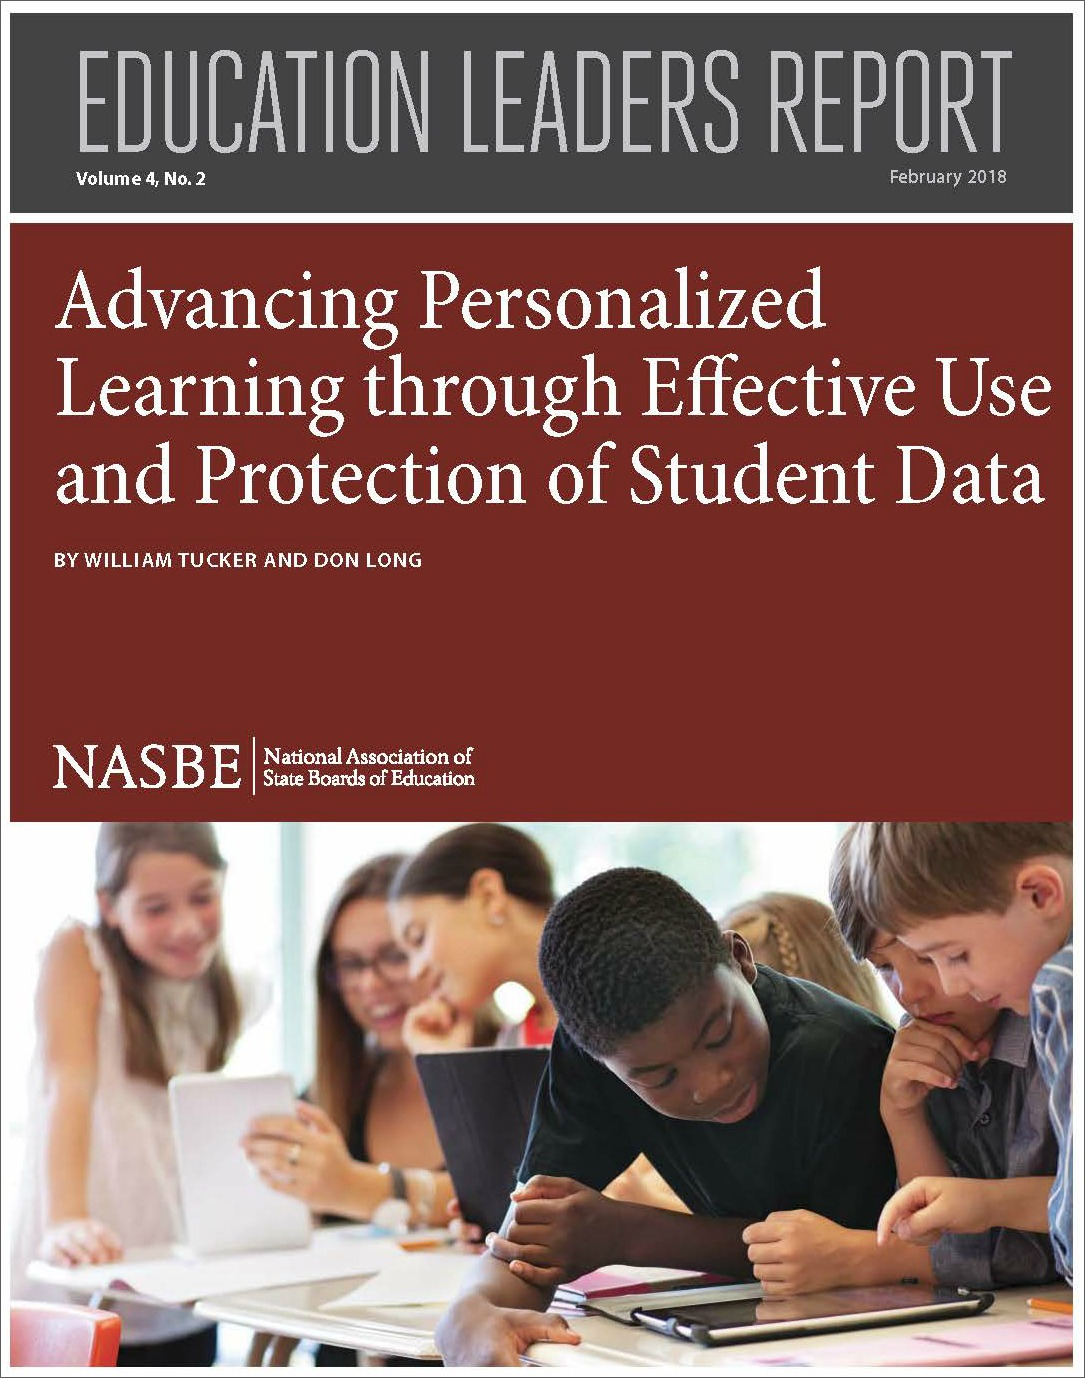 Cover Image for Advancing Personalized Learning. Click image to download report